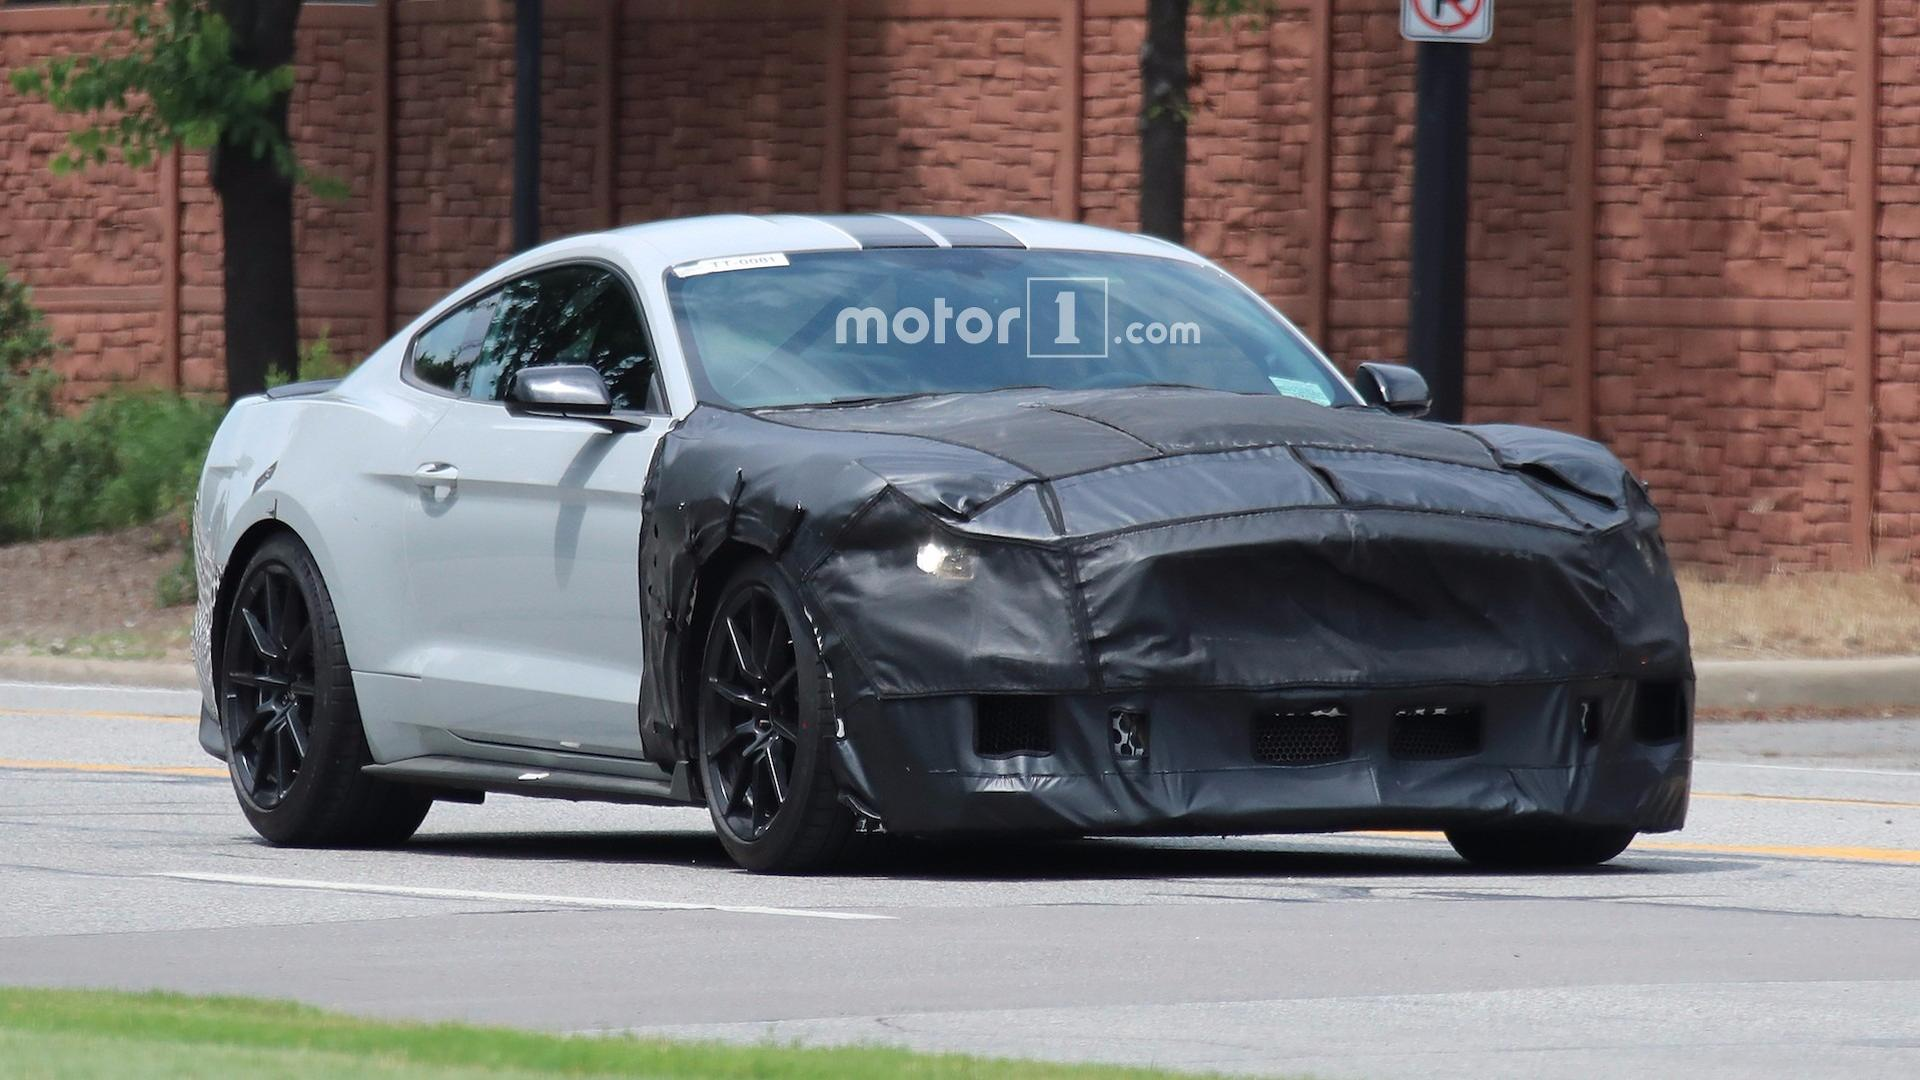 Famoso 2019 Ford Mustang Shelby GT500 Looks Aggressive In New Rendering RK51